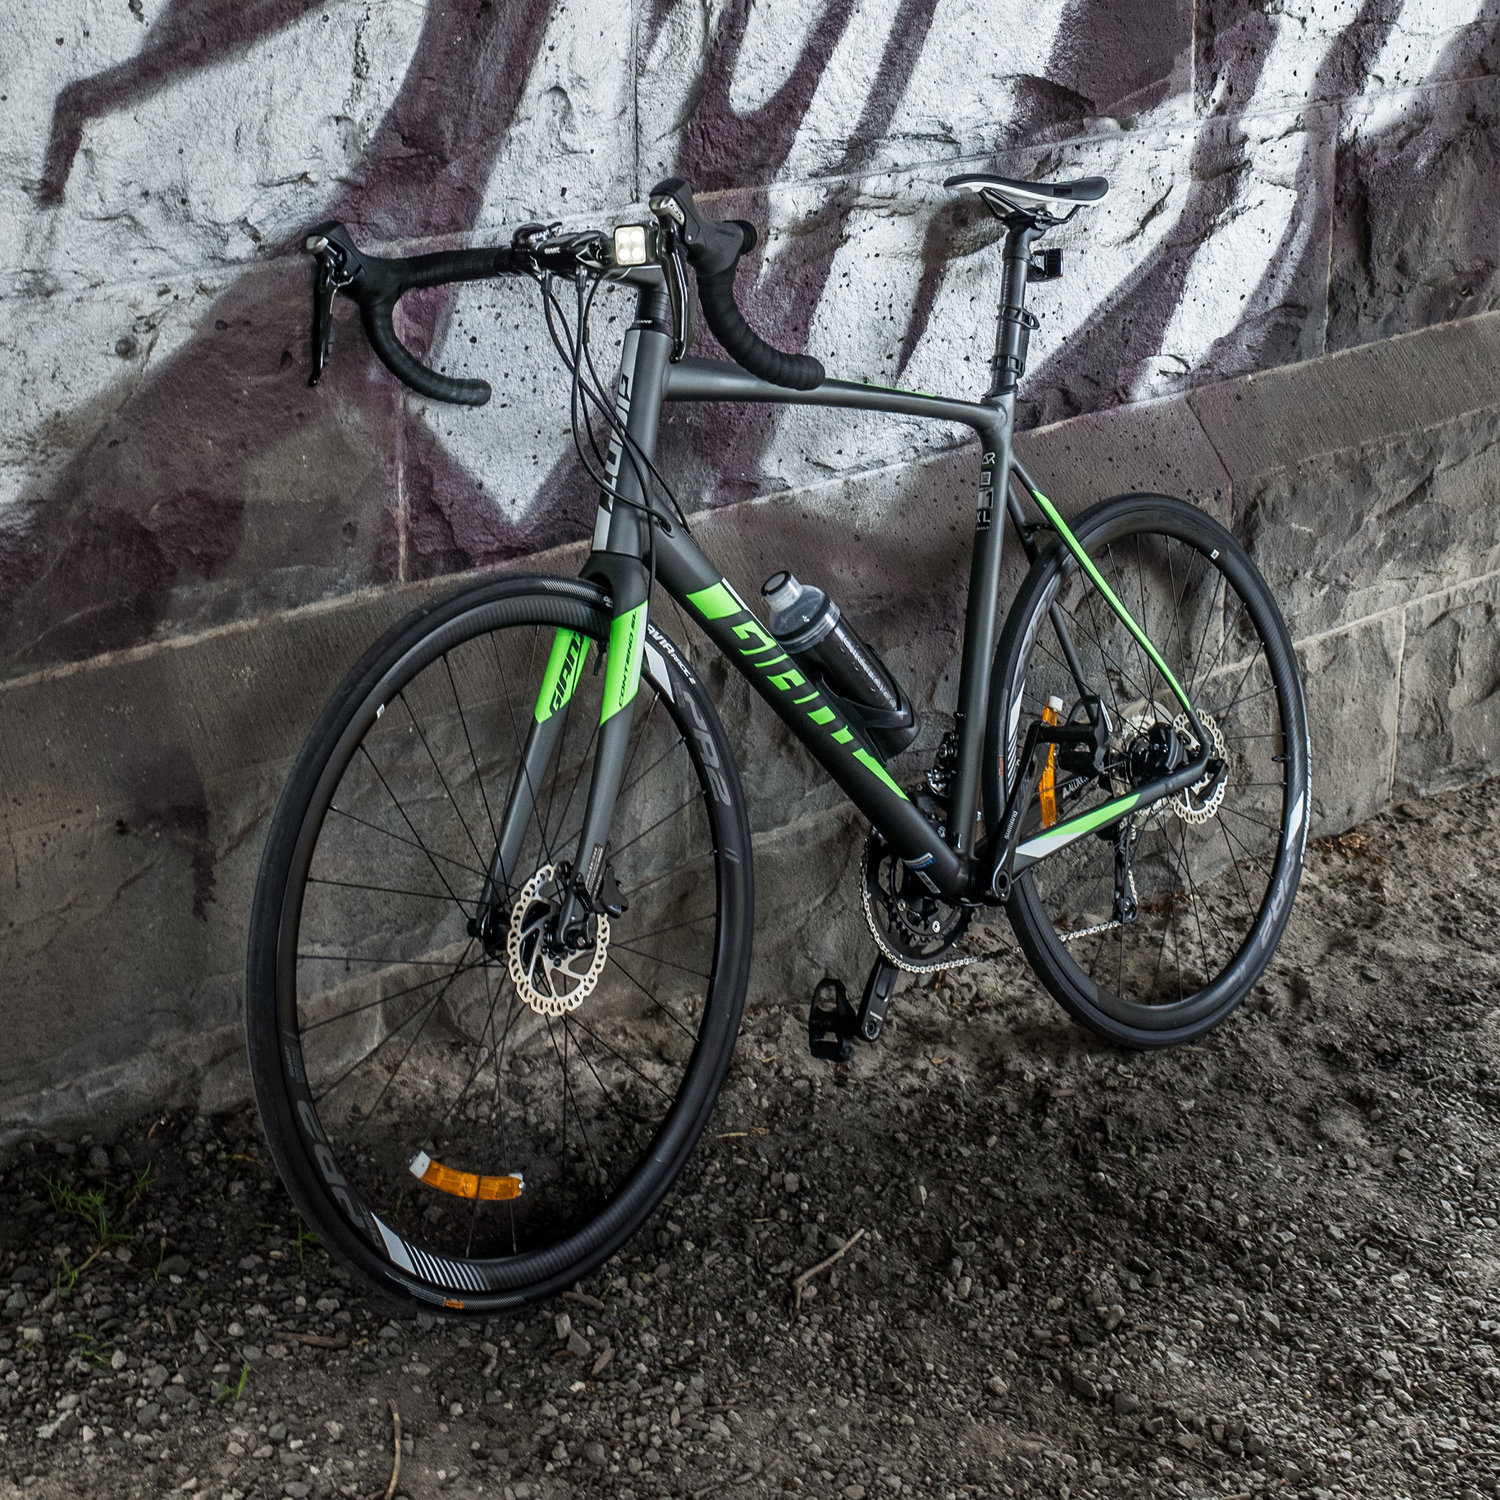 f54f345e592 Giant - 2018 Contend SL 1 Disc in Graphite and Green Review — Andrew Sampson